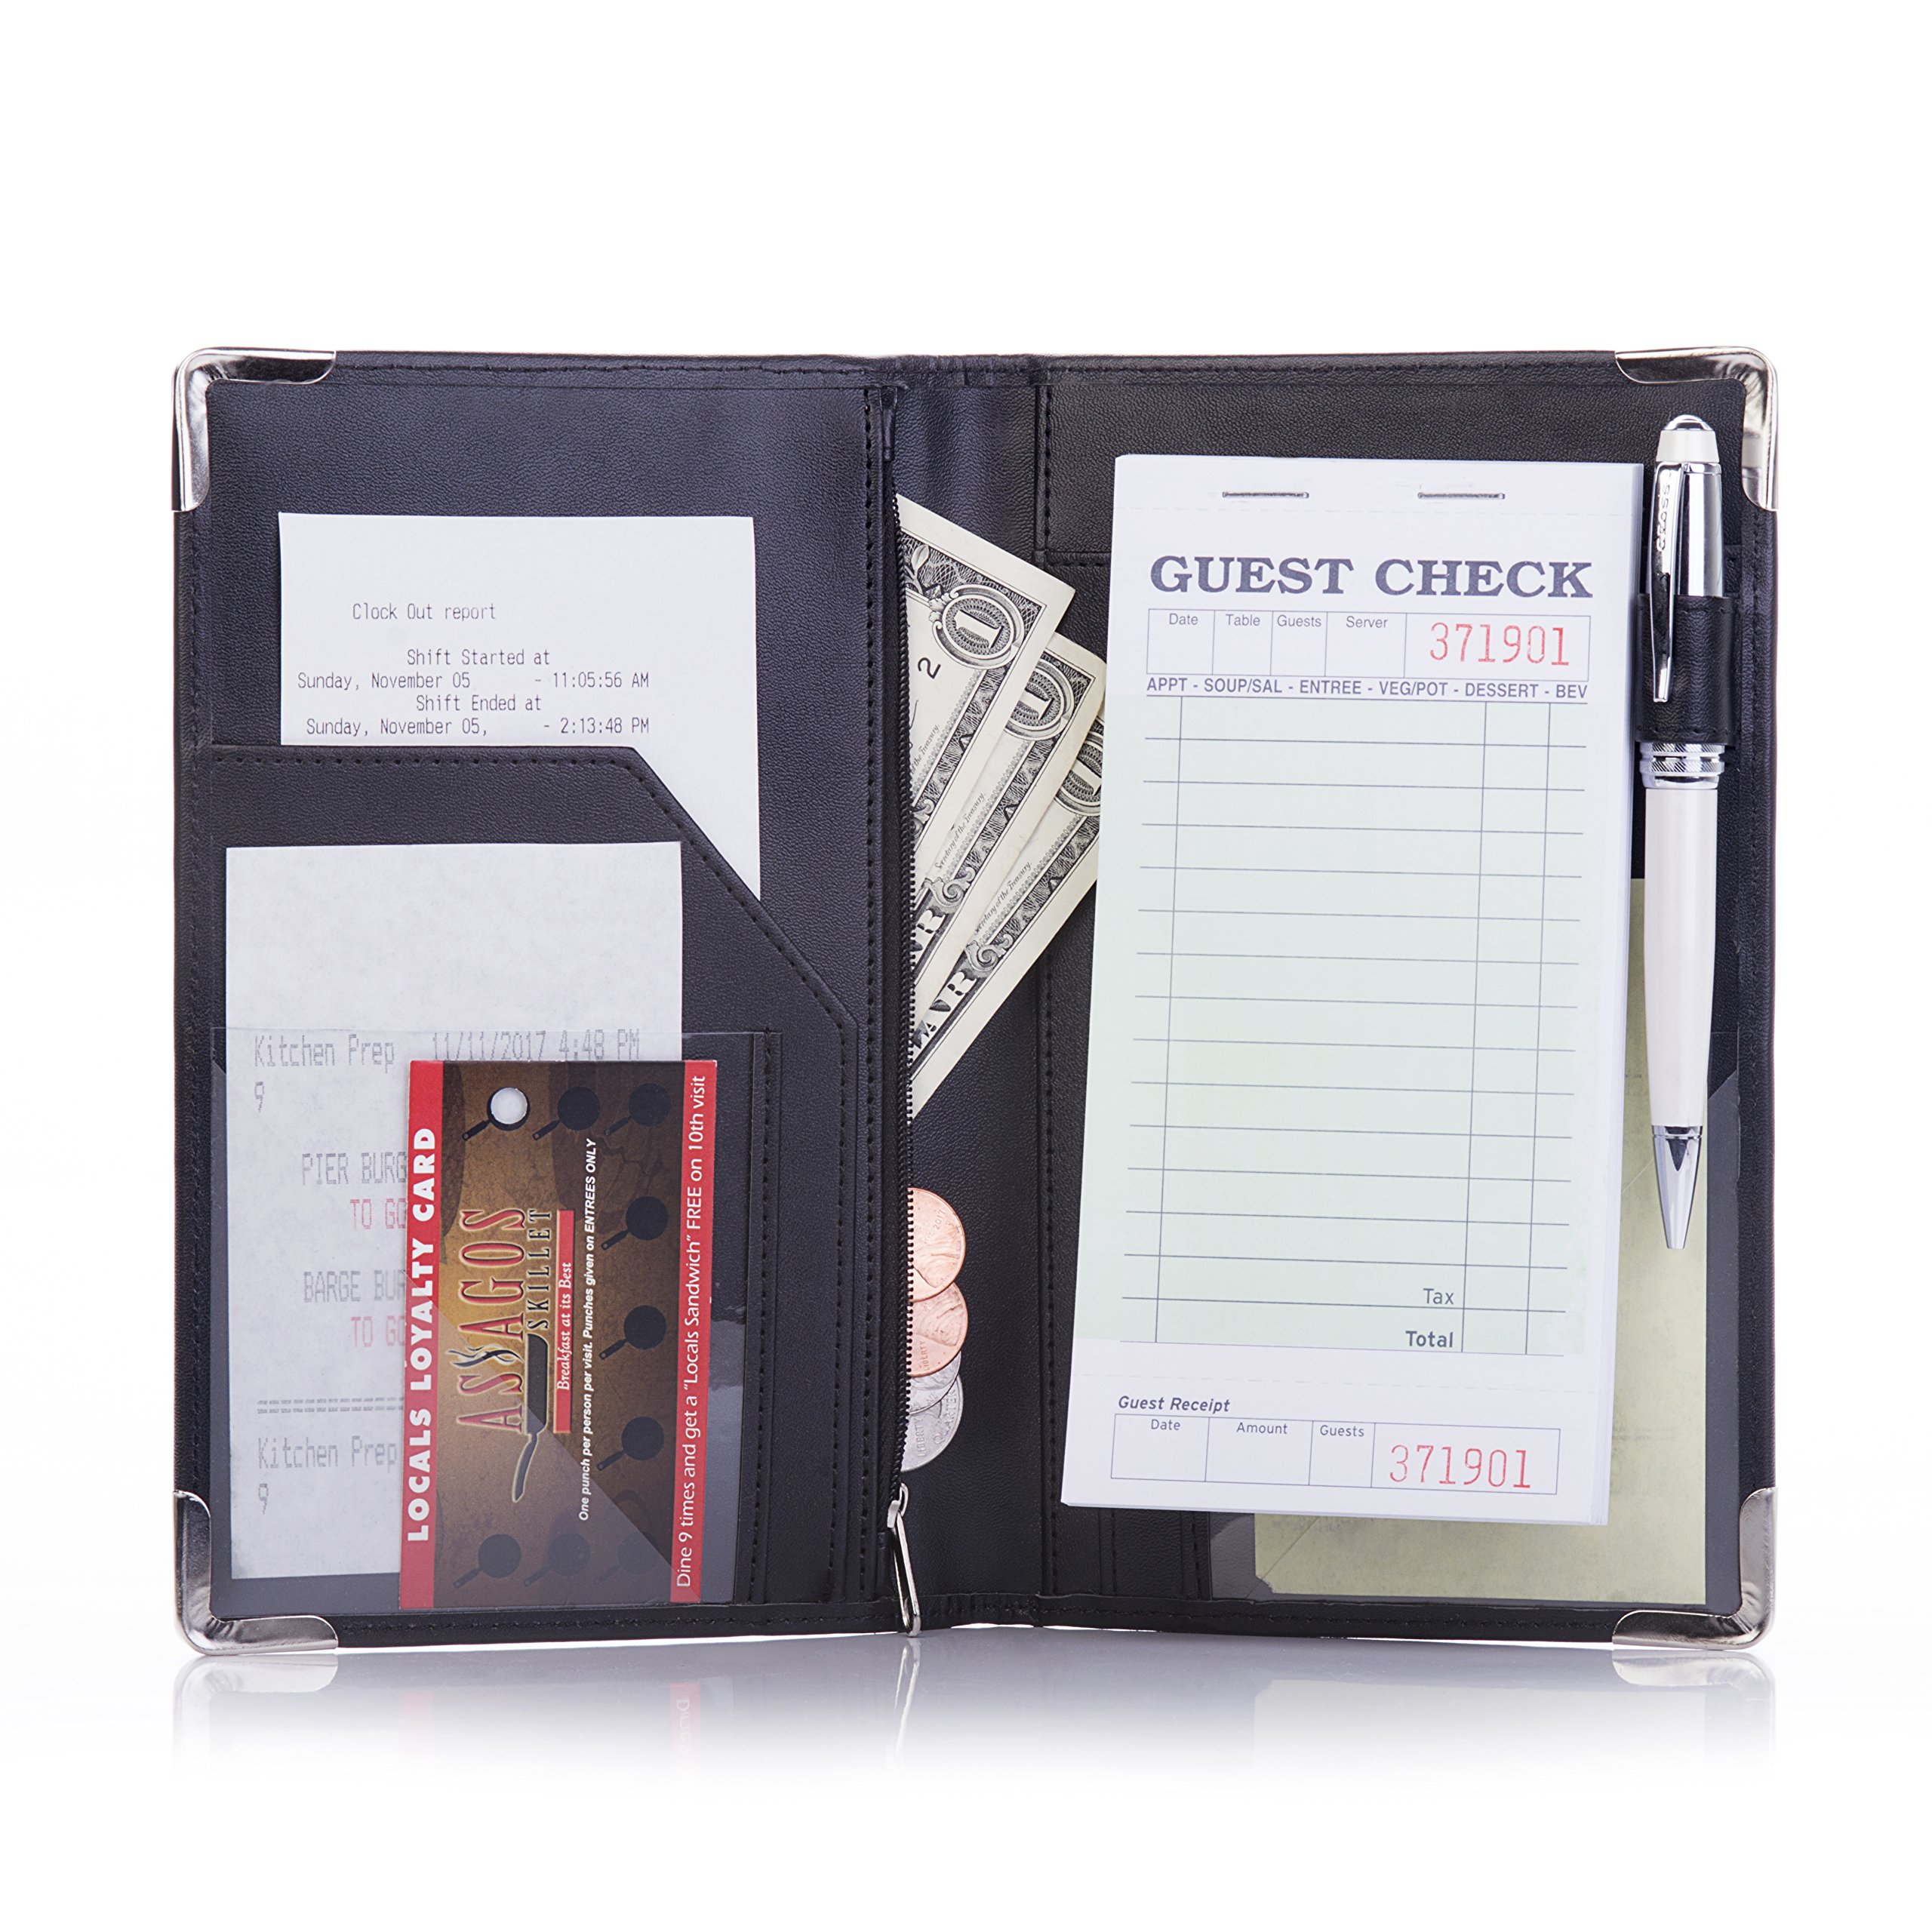 Deluxe Server Book Organizer for Restaurant Waiter Waitress Waitstaff | Comfortably Fits in Apron | 9 Pockets includes Zipper Pouch with Pen Holder | Holds Guest Checks, Money, Order Pad